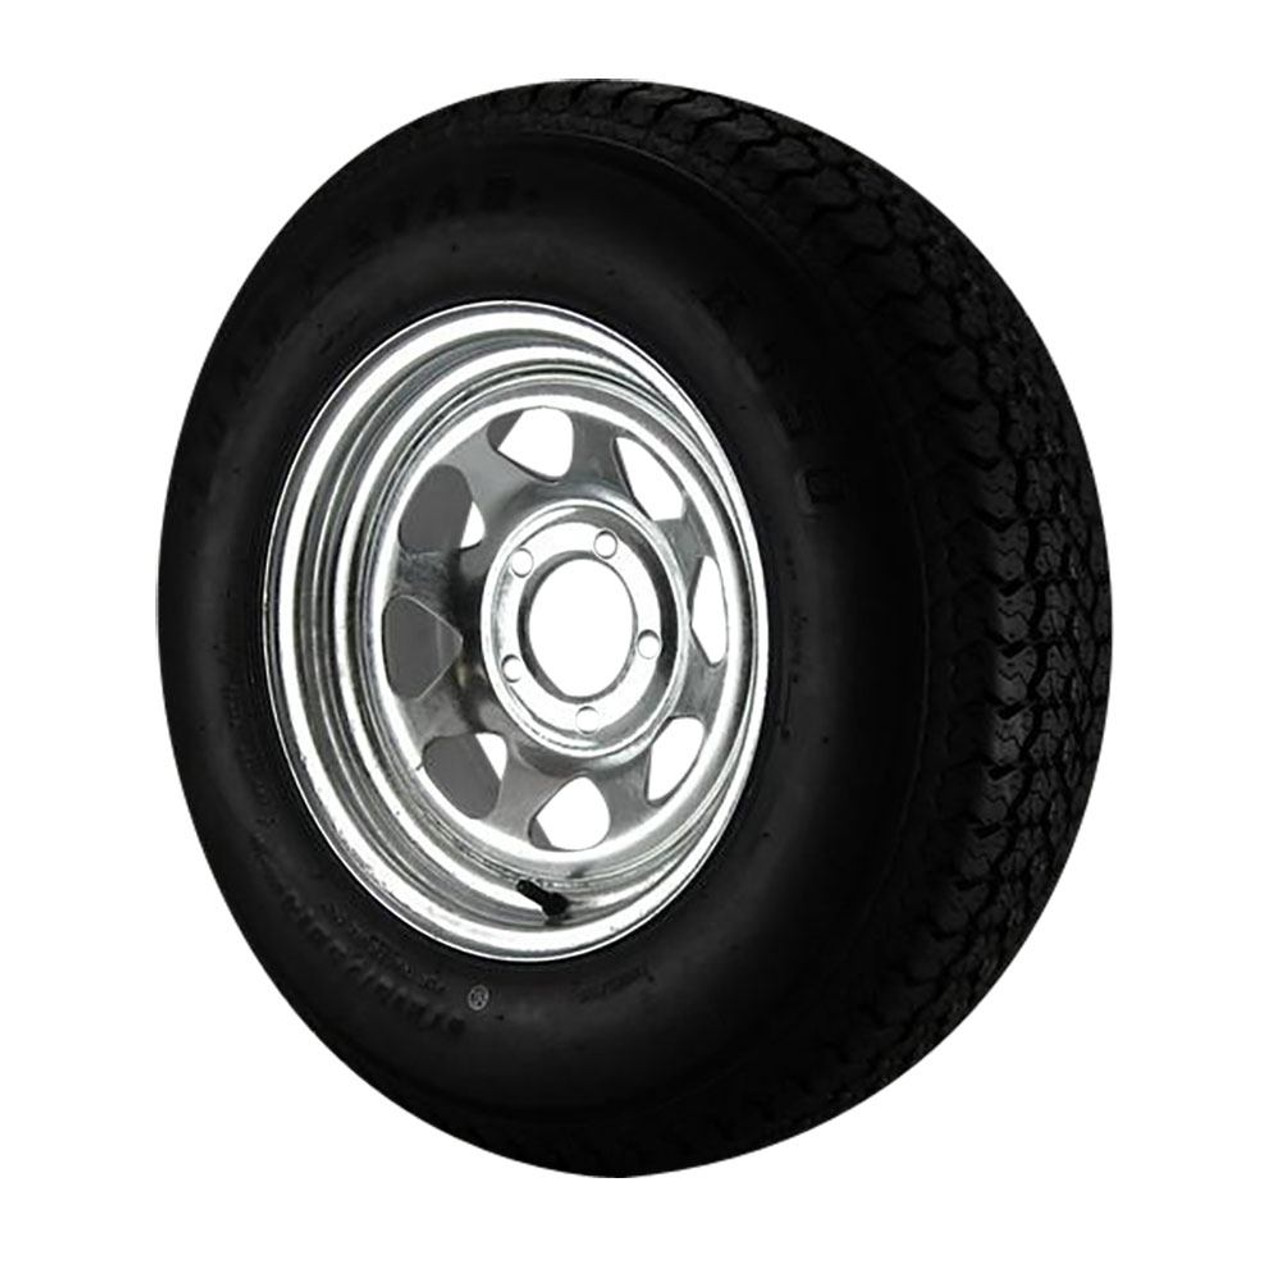 ST225//75D15 Loadstar Trailer Tire LRC on 5 Bolt Galvanized Spoke Wheel